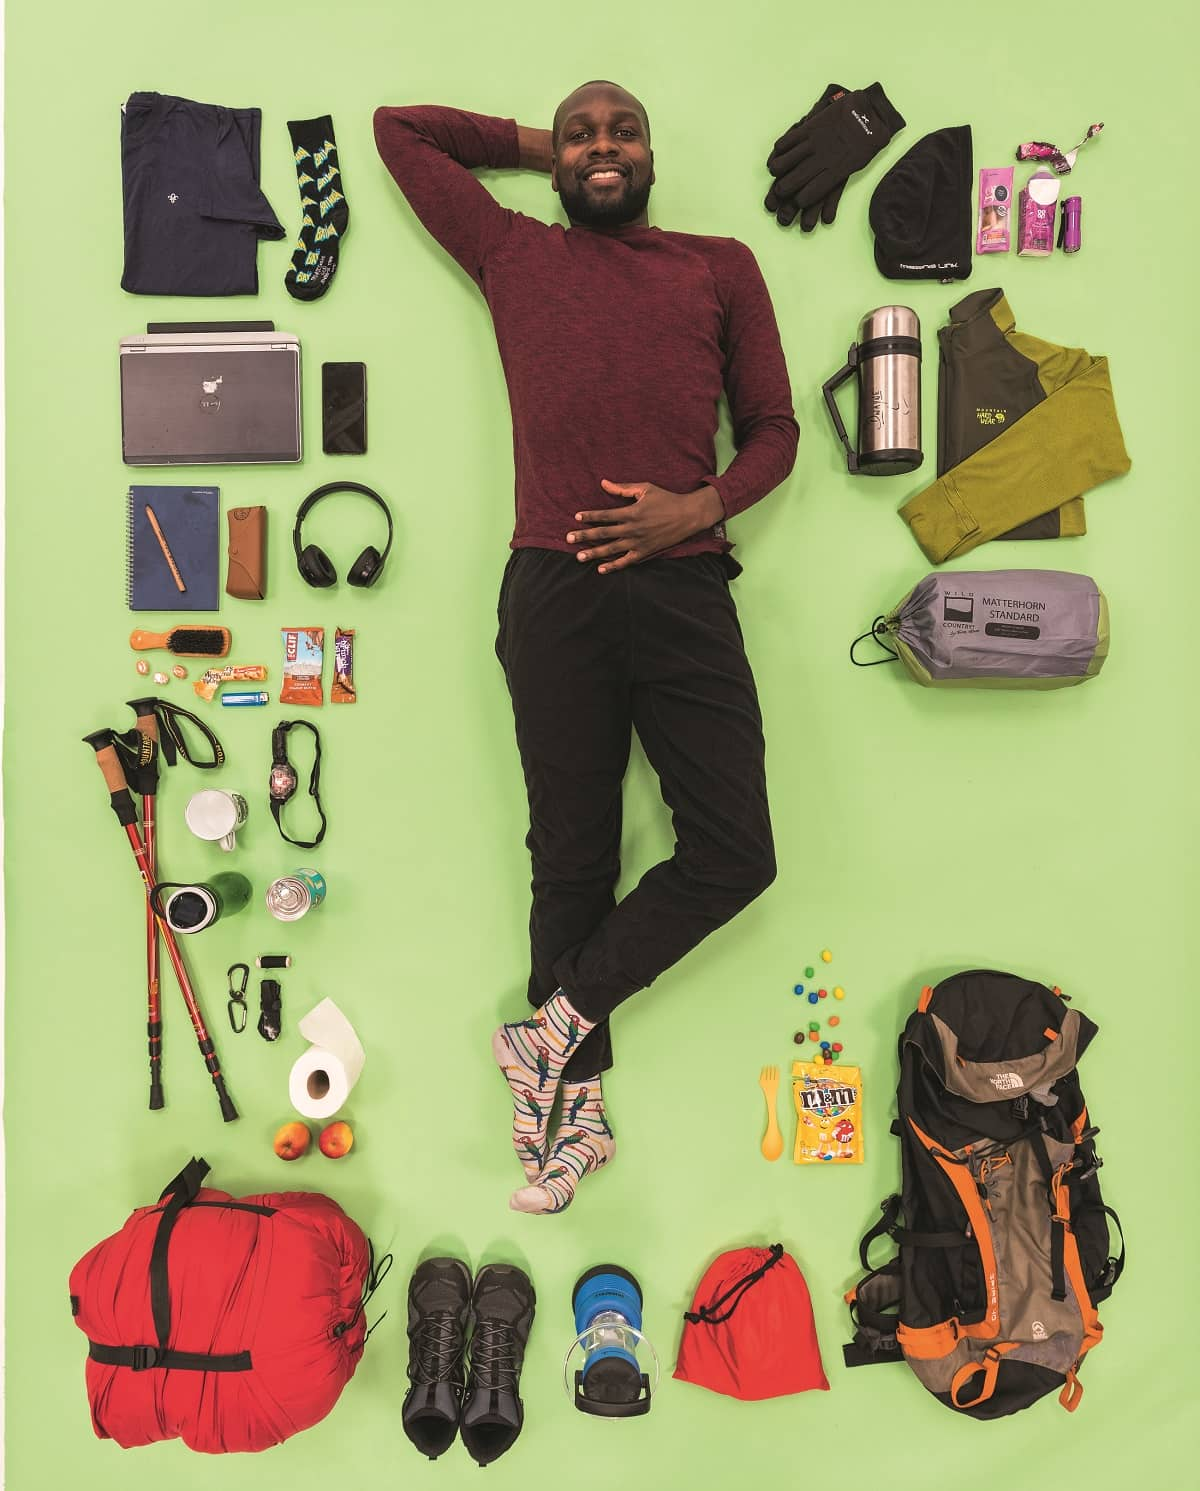 Dwayne Fields, a Scout Ambassador, with all of his favourite things he likes to take on camp